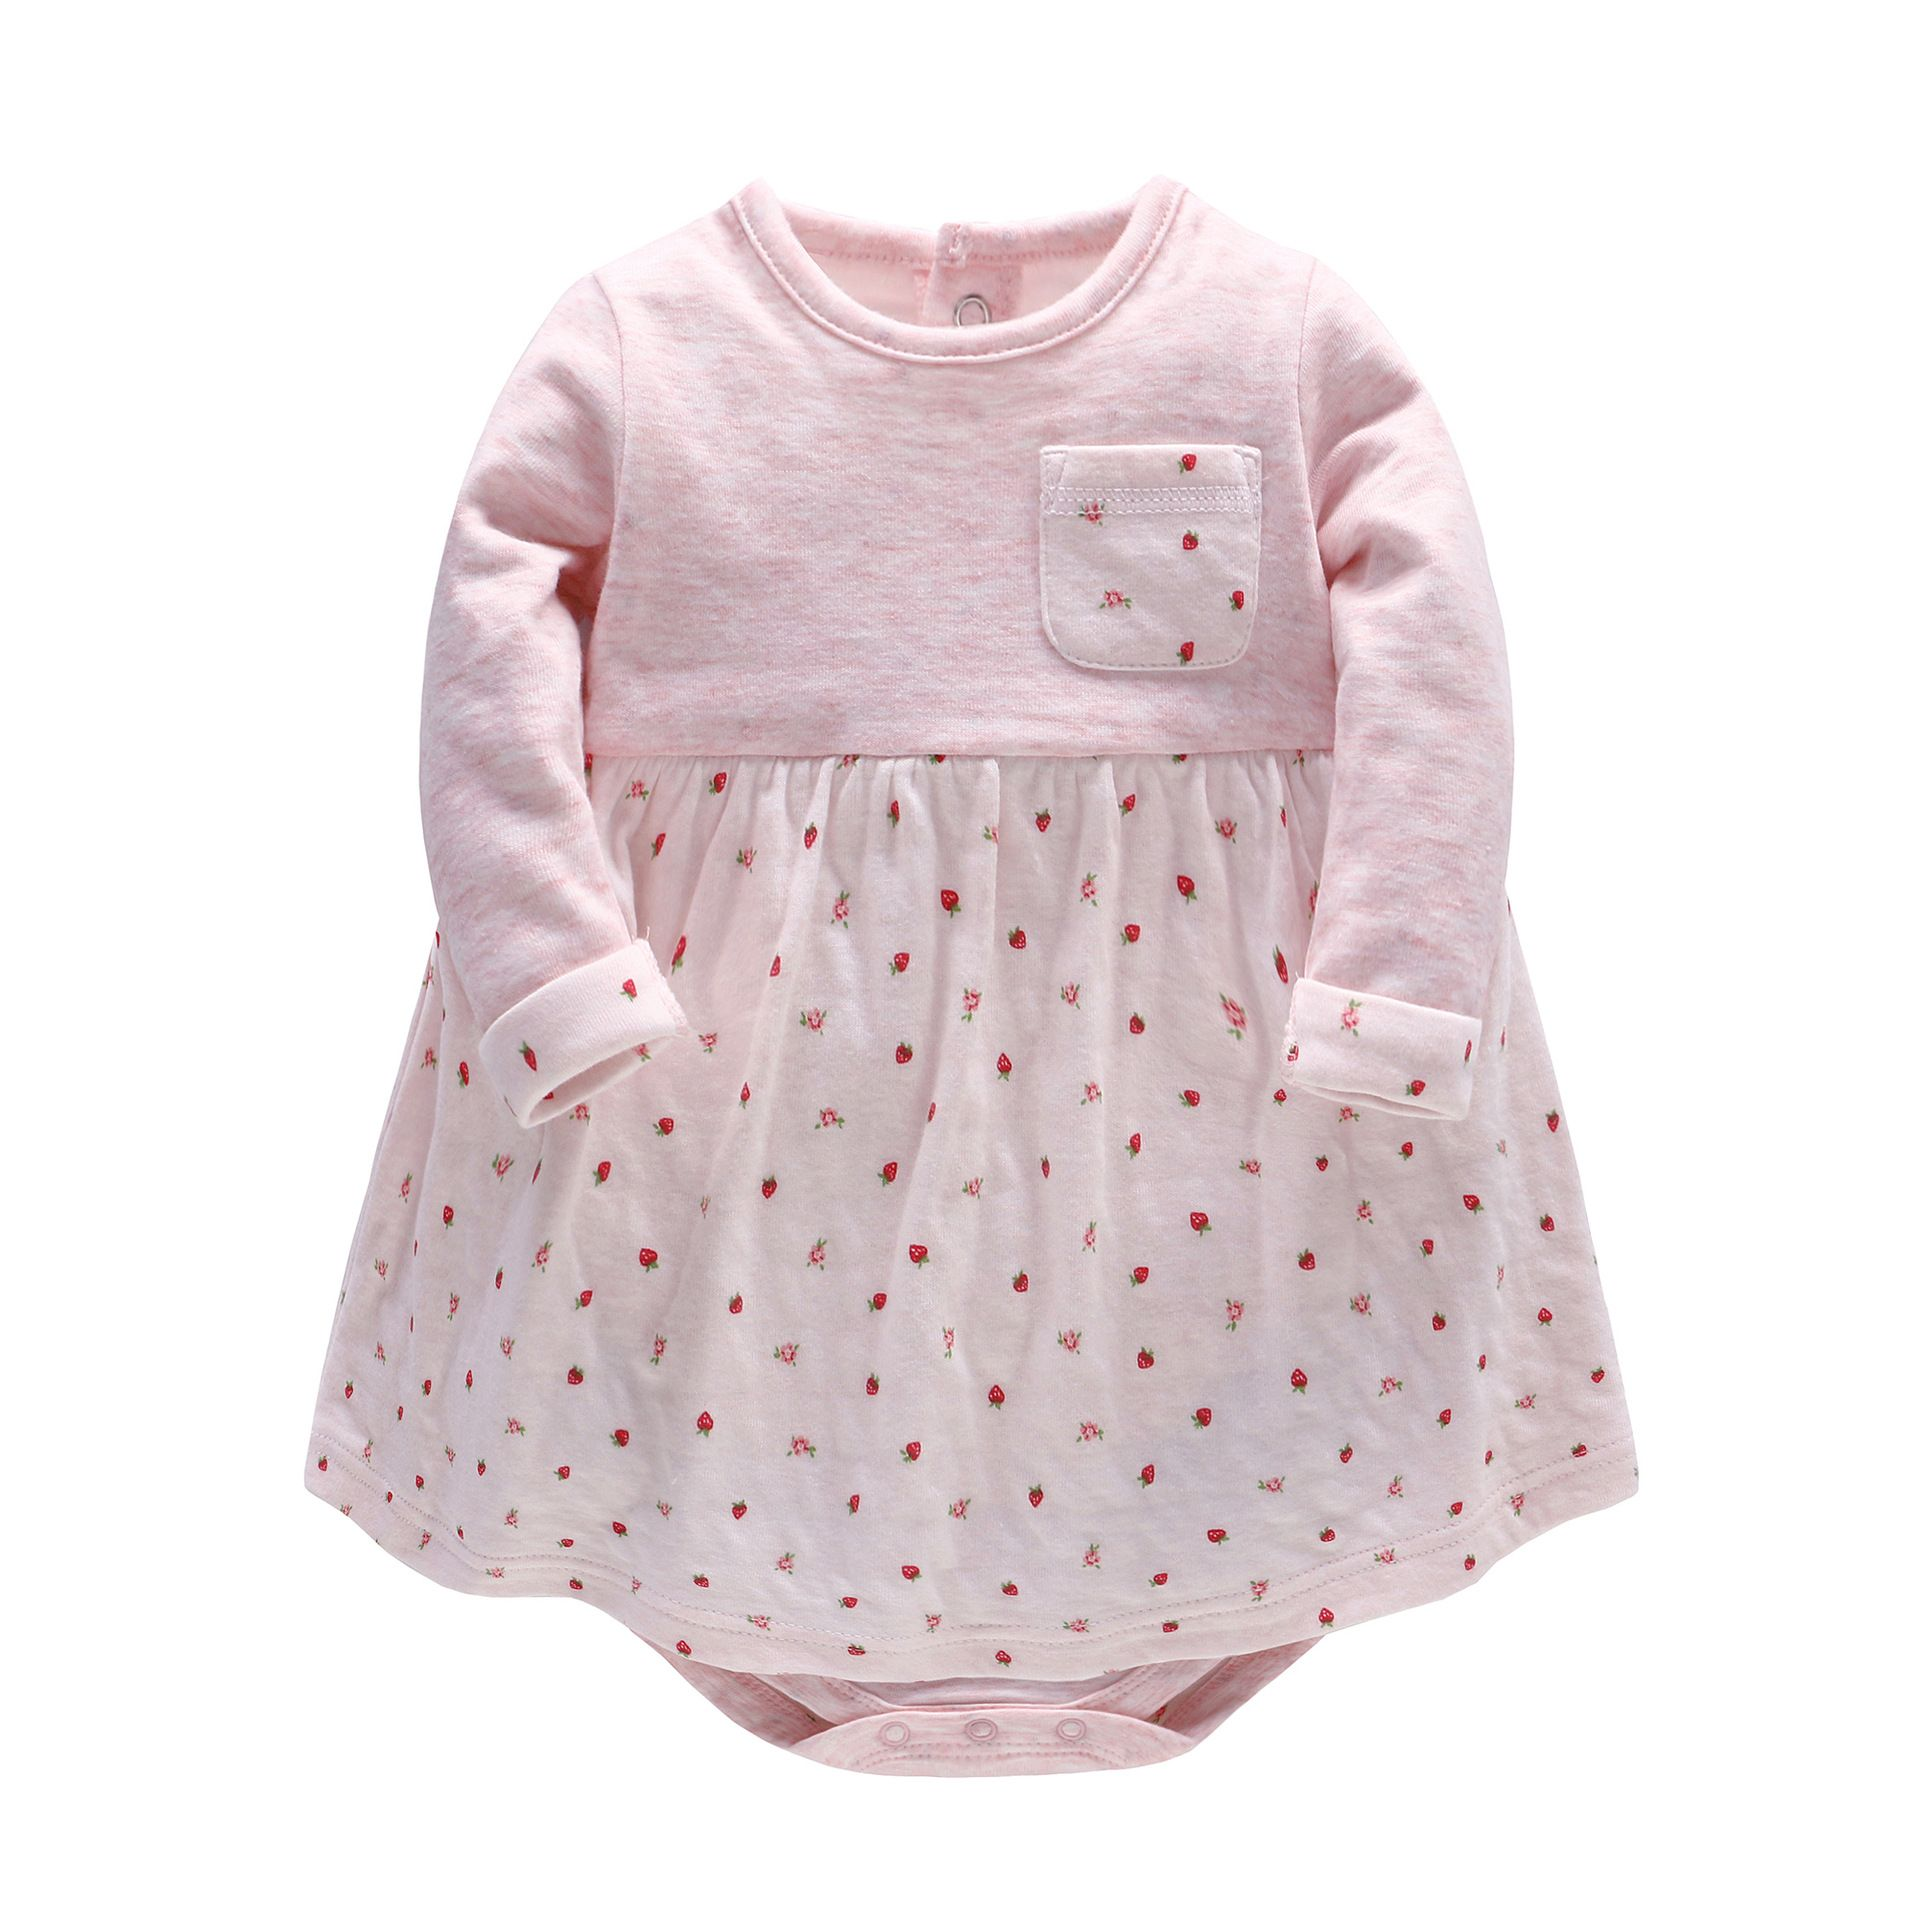 2017 New Fashion Baby Girl Dress Baby Spring Autumn Long sleeve